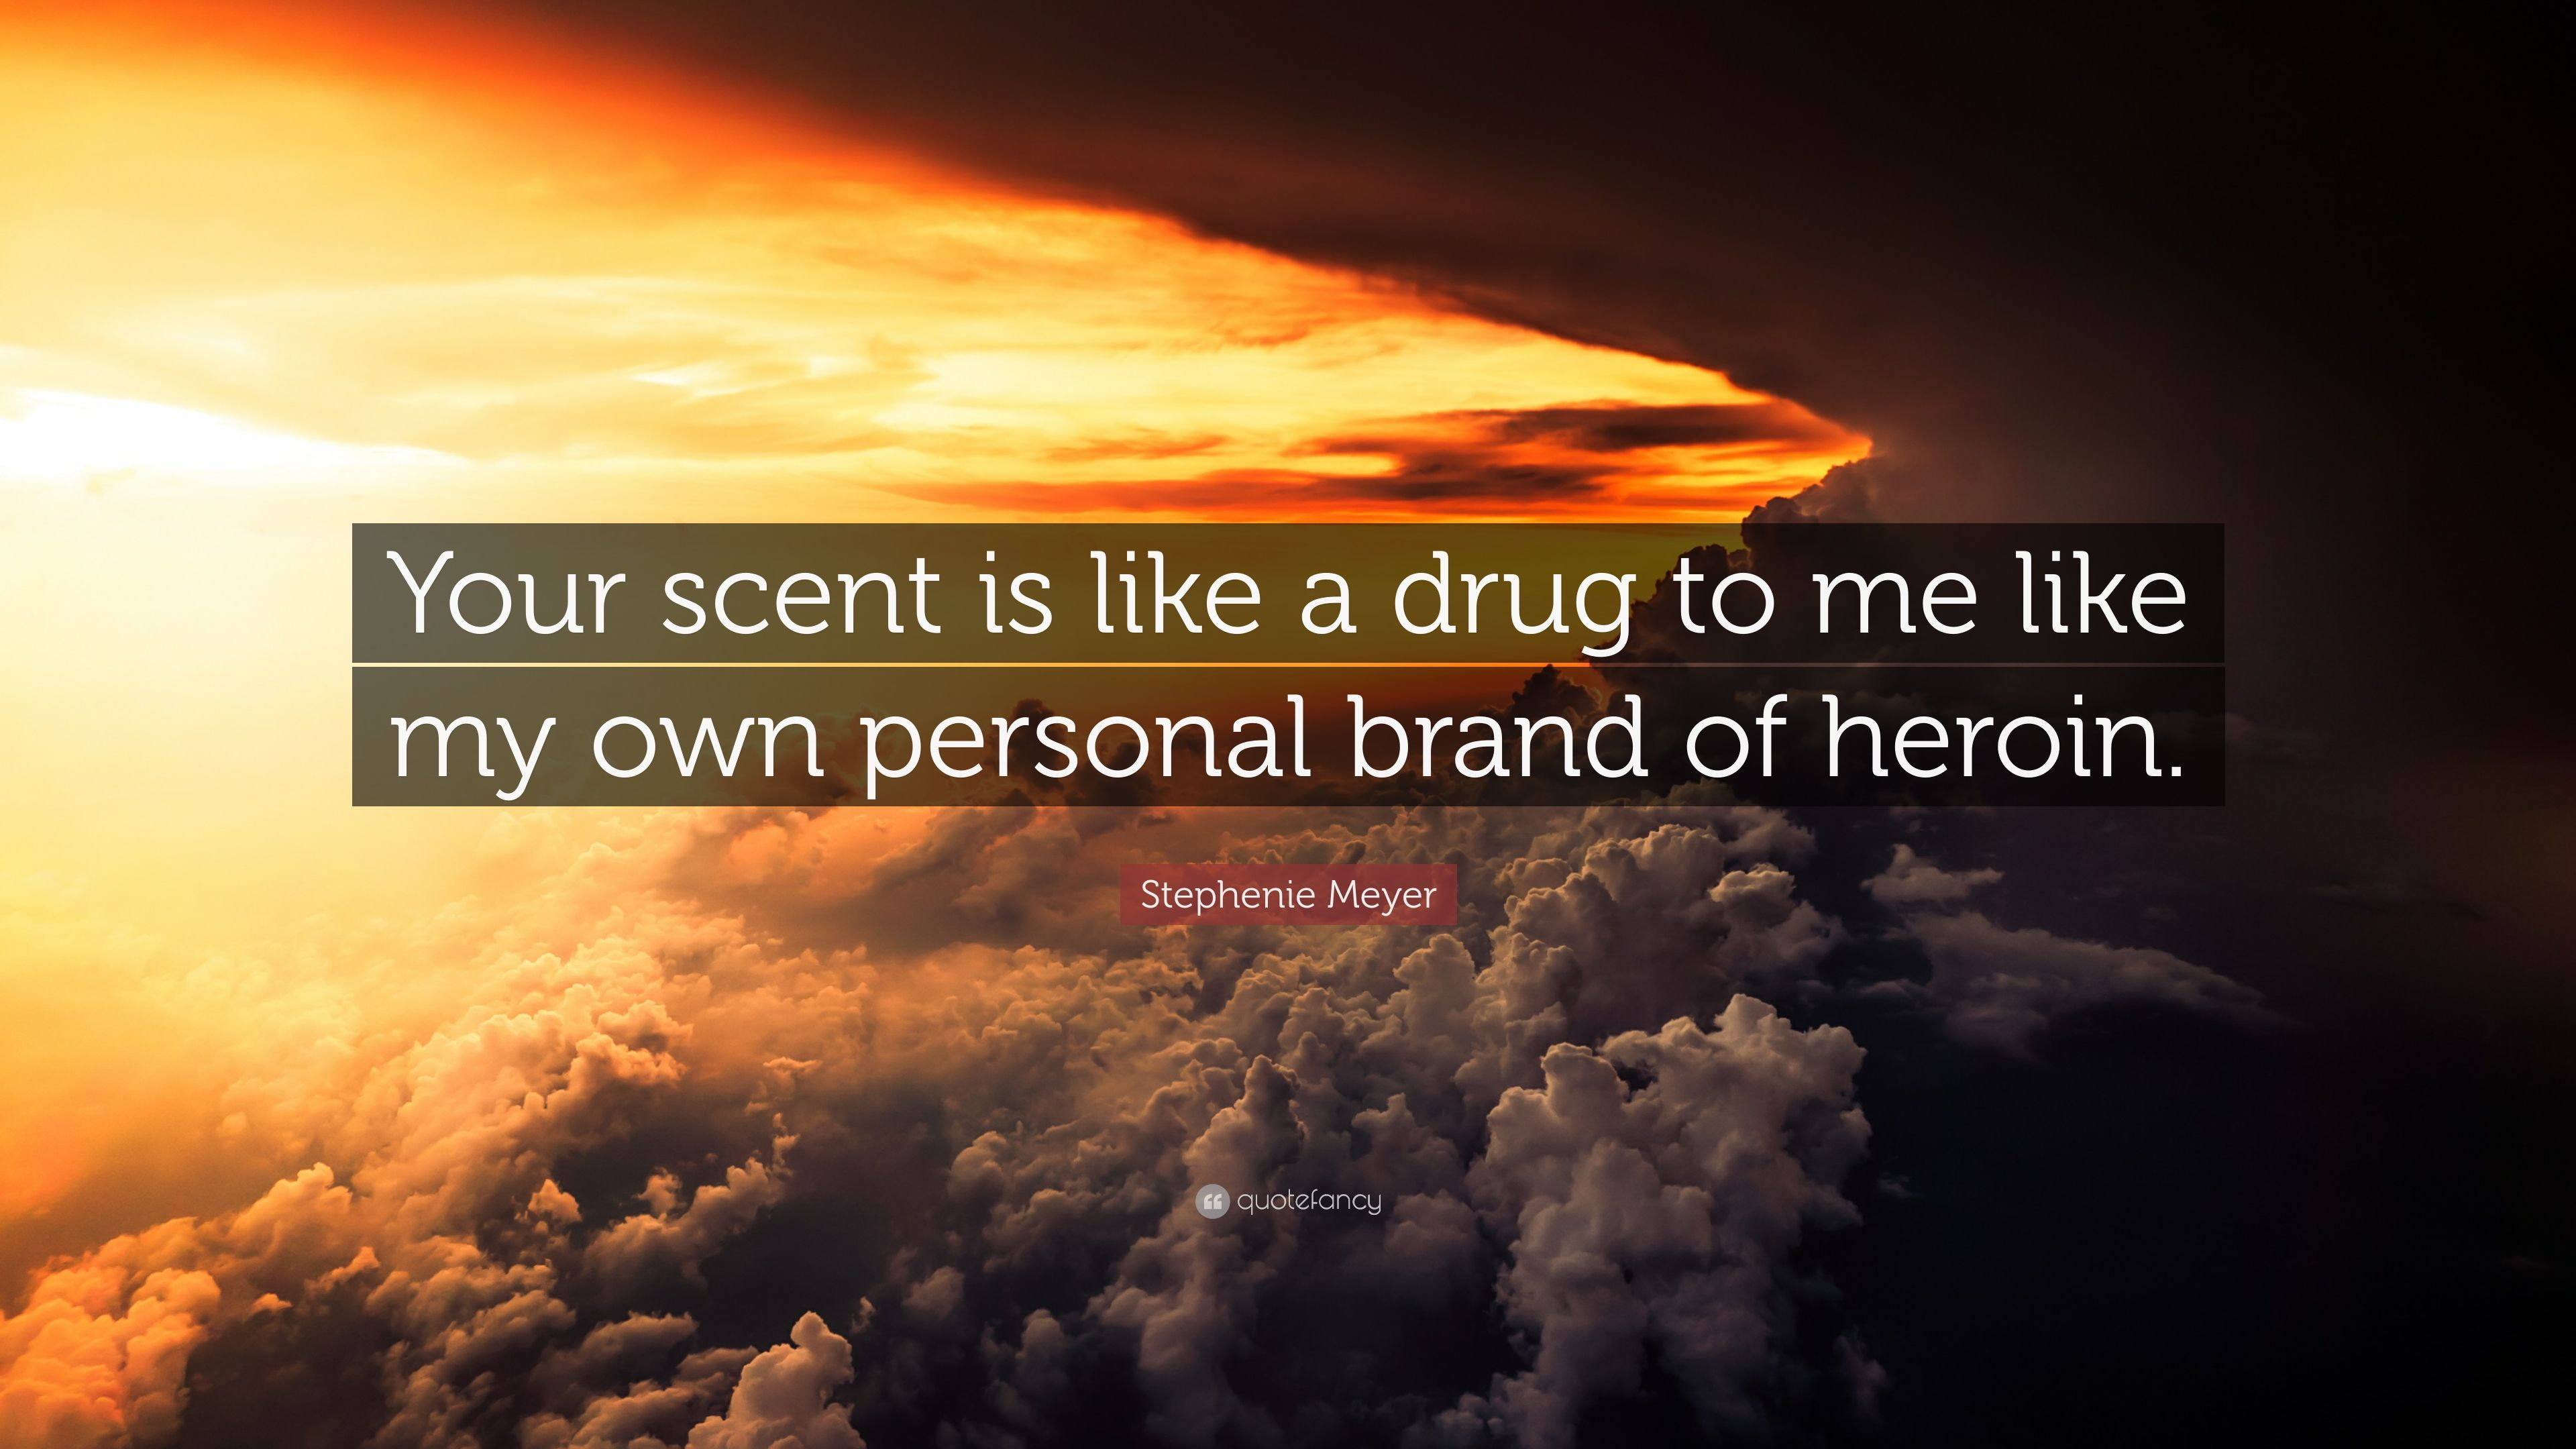 Stephenie Meyer Quote Your Scent Is Like A Drug To Me Like My Own Personal Brand Of Heroin 6 Wallpapers Quotefancy